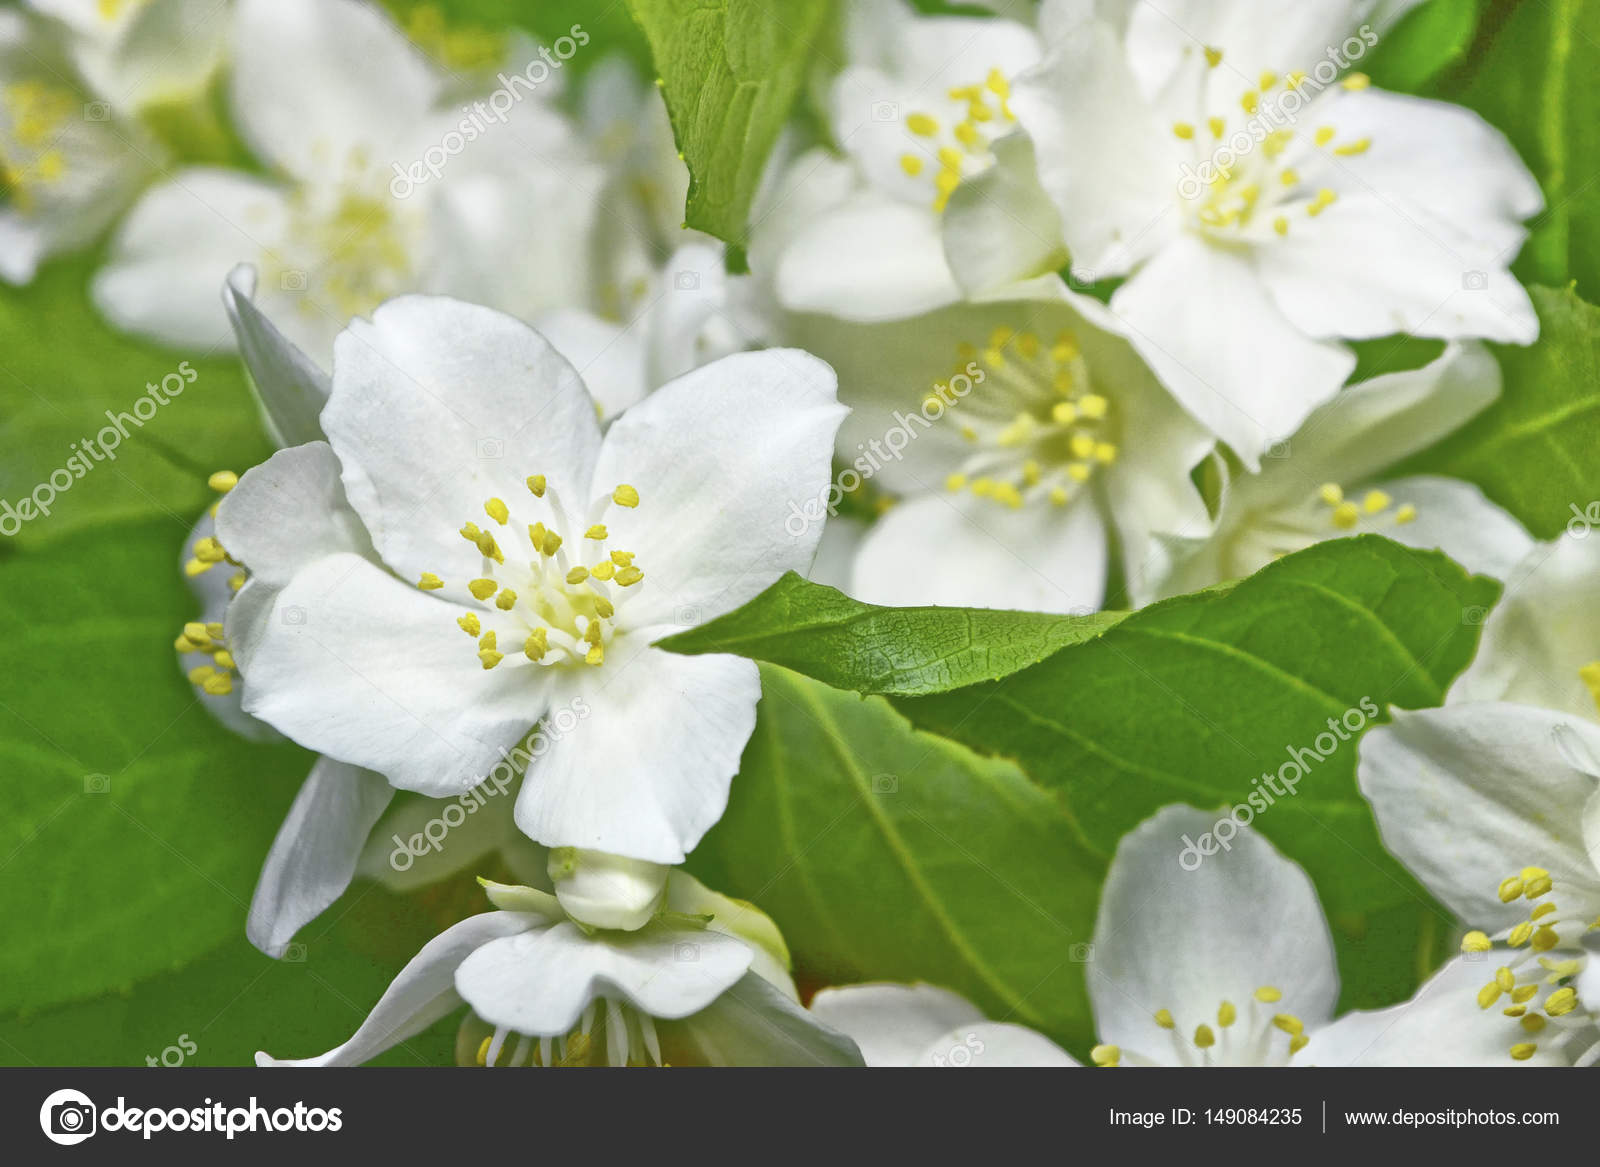 White Jasmine The Branch Delicate Spring Flowers Stock Photo